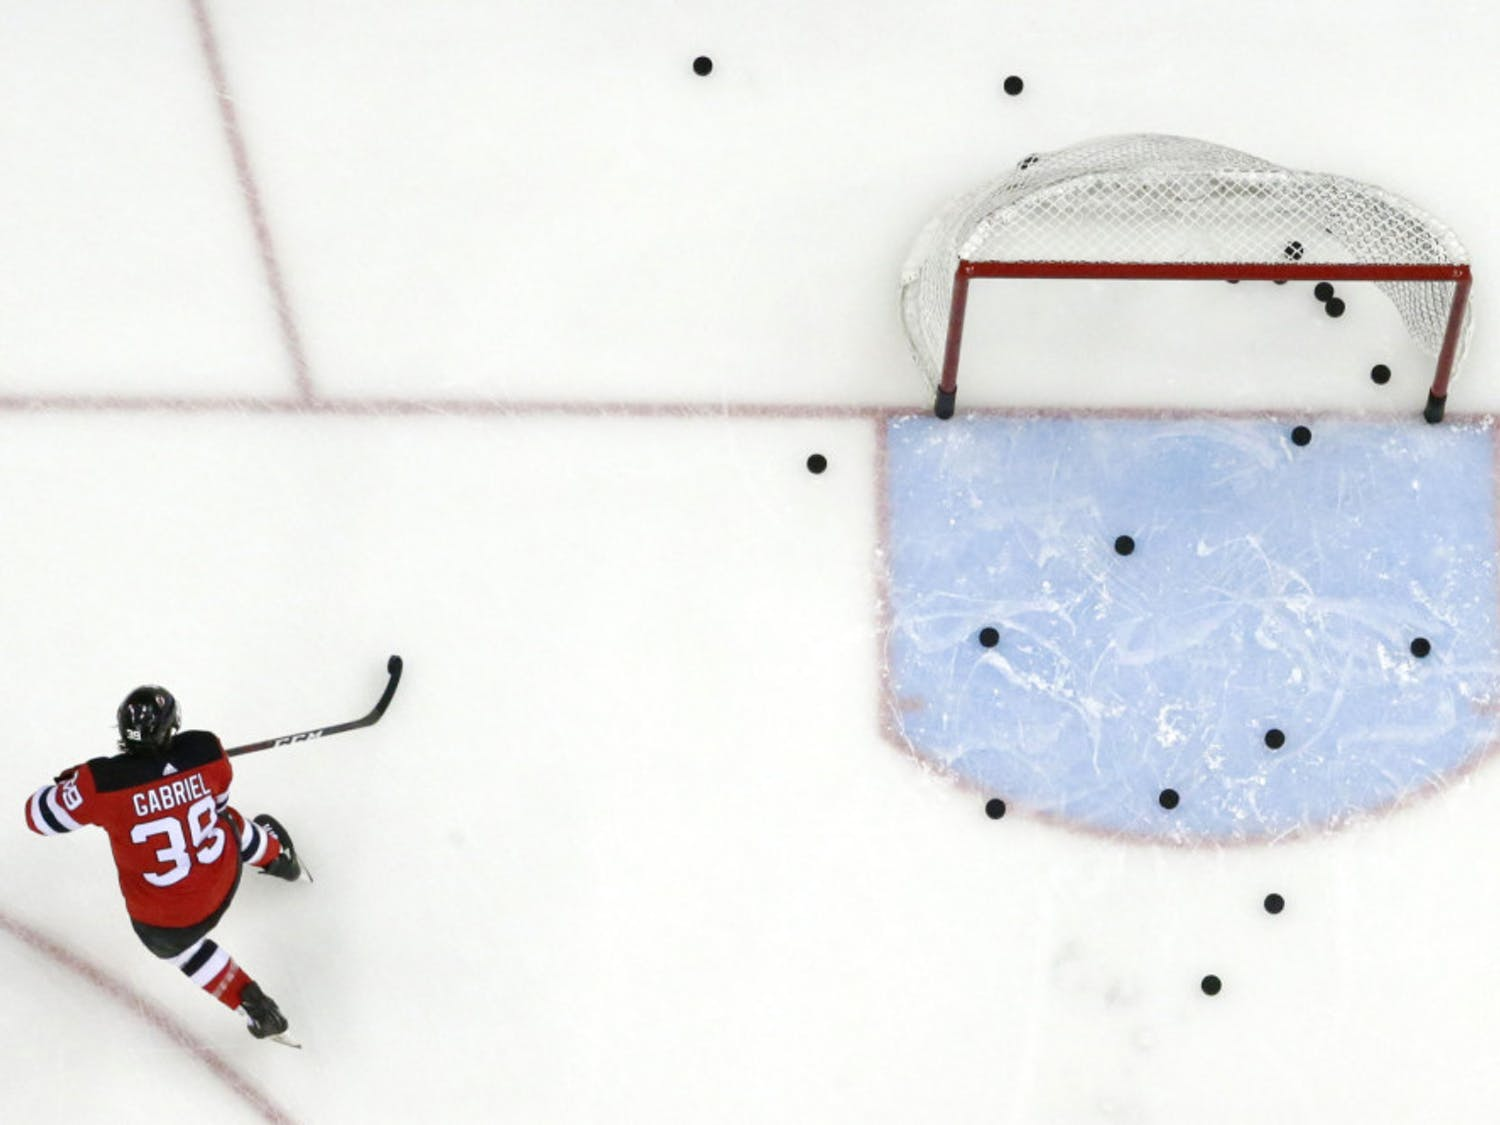 FILE - In this Feb. 17, 2019, file photo, New Jersey Devils right wing Kurtis Gabriel works out prior to an NHL hockey game against the Buffalo Sabres in Newark, N.J. The NHL is hoping to move to Phase 2 of its return-to-play protocol, including the opening of practice facilities and allowing small group workouts, early next month. The league, which was forced to pause its season on March 12 because of the COVID-19 pandemic, released a 22-page memo detailing the plan Monday, May 25, 2020. The document stresses there's no exact date for the start of Phase 2 or a timetable for how long it will last. (AP Photo/Julio Cortez, File)